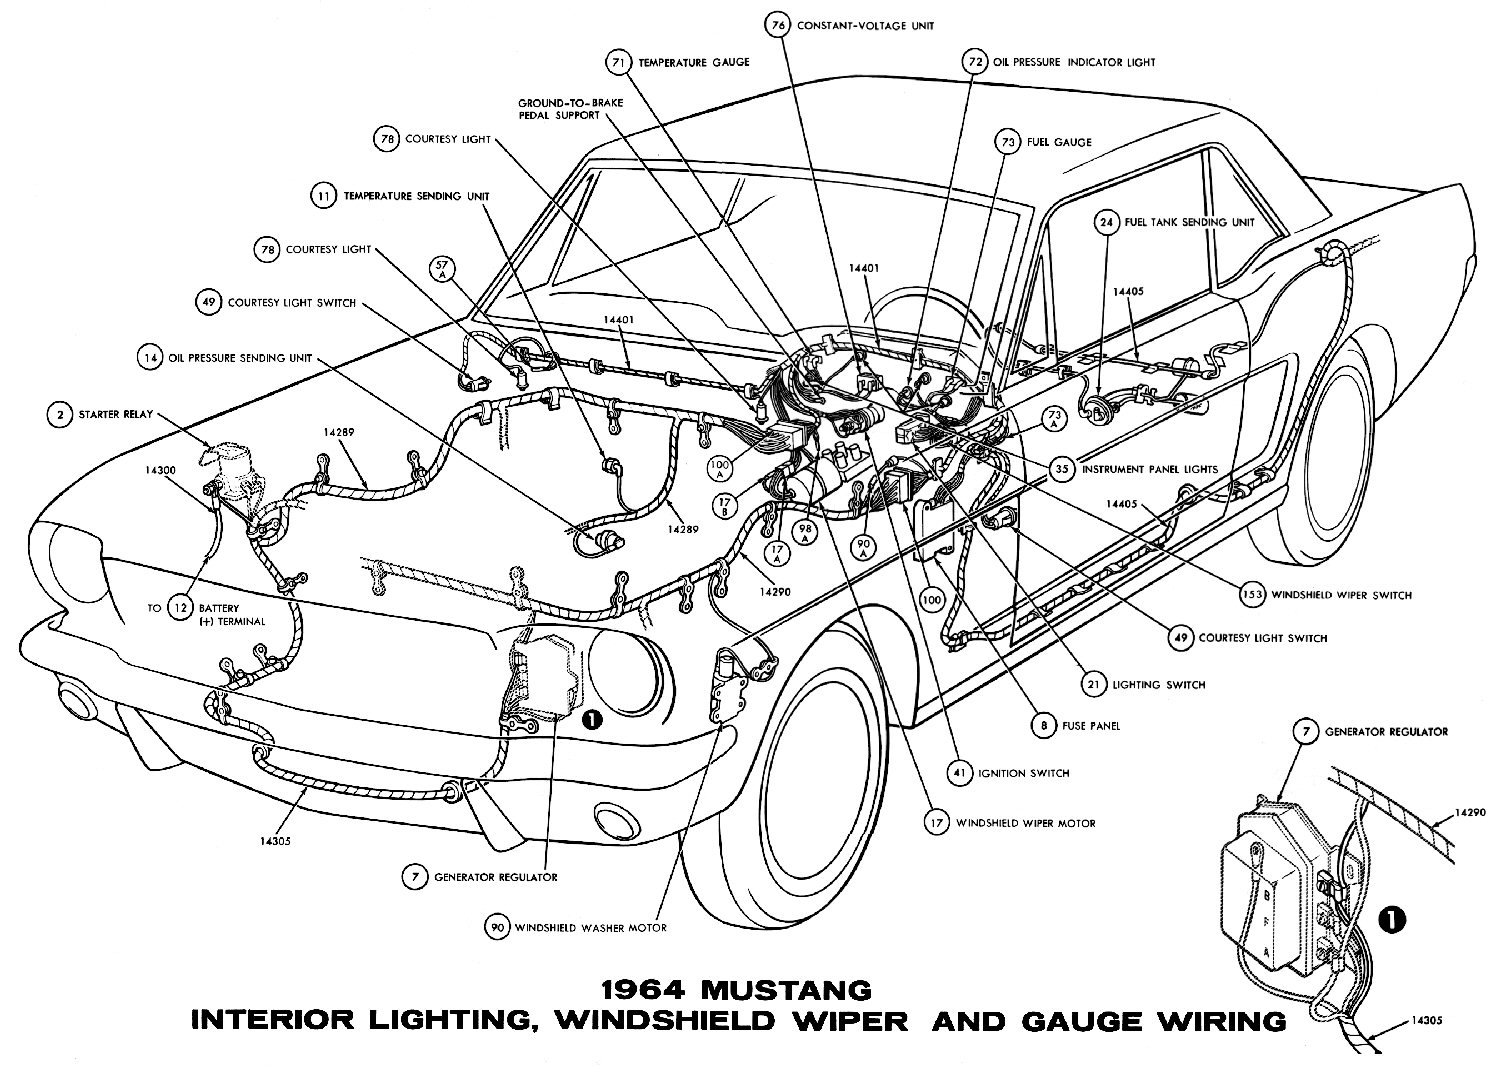 1998 Gas Club Car Schematic Diagram Quick Start Guide Of Wiring 91 Mustang Blower Motor Wire Parts Drawing At Getdrawings Com Free For Personal Use Your Choice 1996